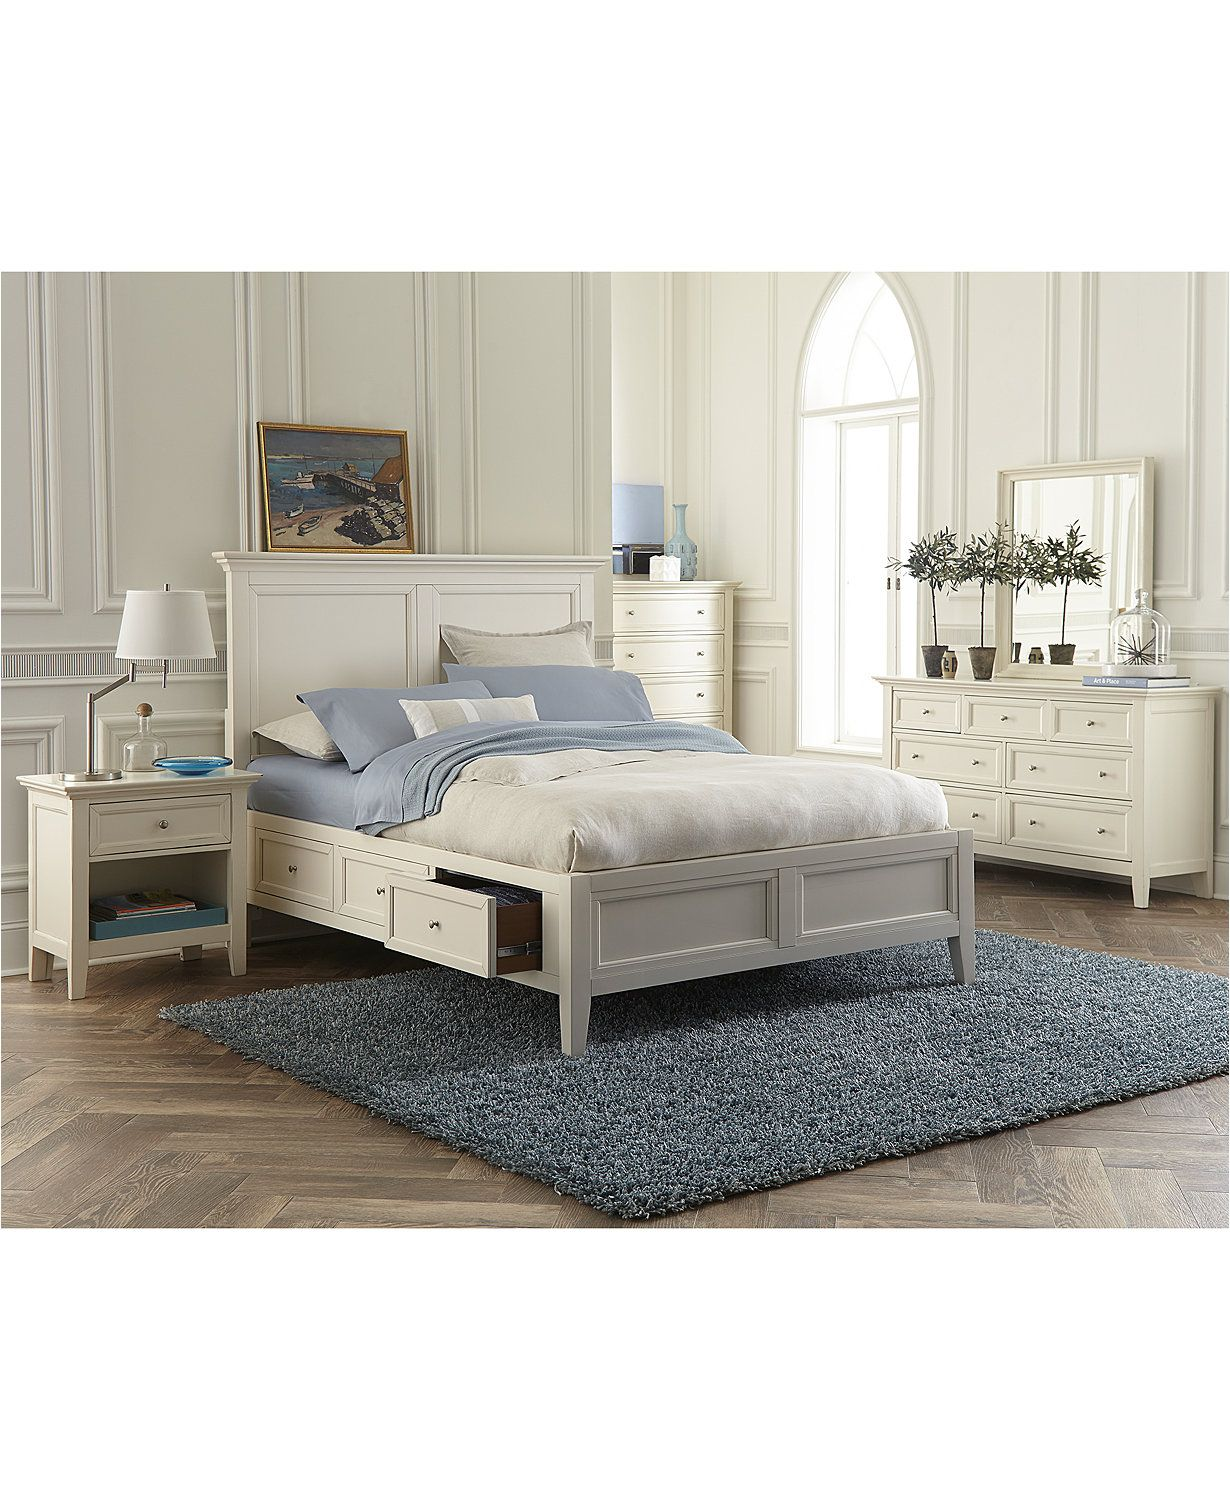 Furniture Sanibel Storage Bedroom Furniture 3 Pc Set Queen Bed Nightstand And Dresser Created For Macy S Reviews Furniture Macy S In 2020 White Bedroom Furniture For Adults Storage Furniture Bedroom White Bedroom Furniture